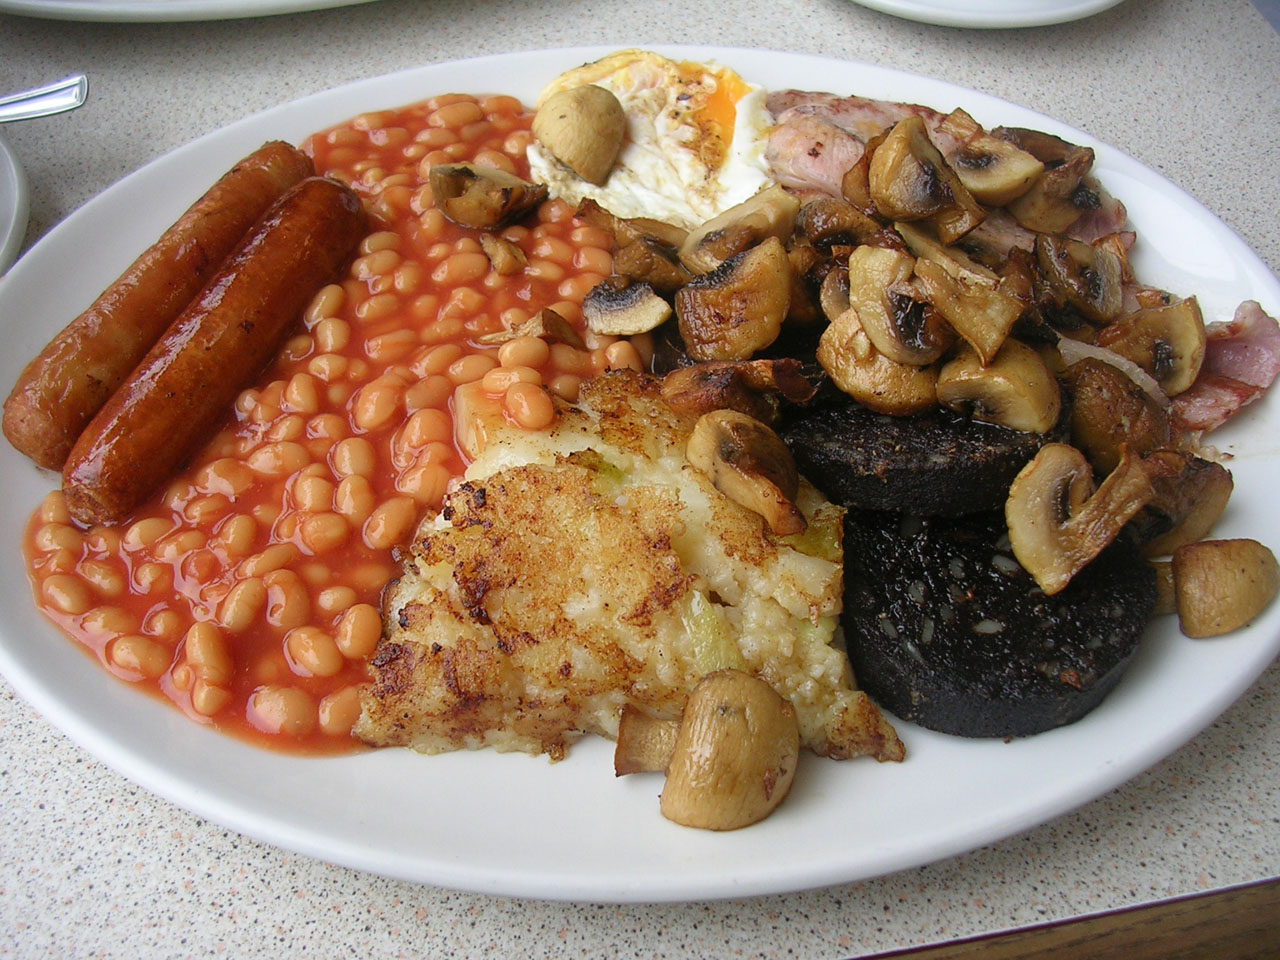 http://www.londondailypicture.com/images/october_2007/english-breakfast-blackpudding.jpg